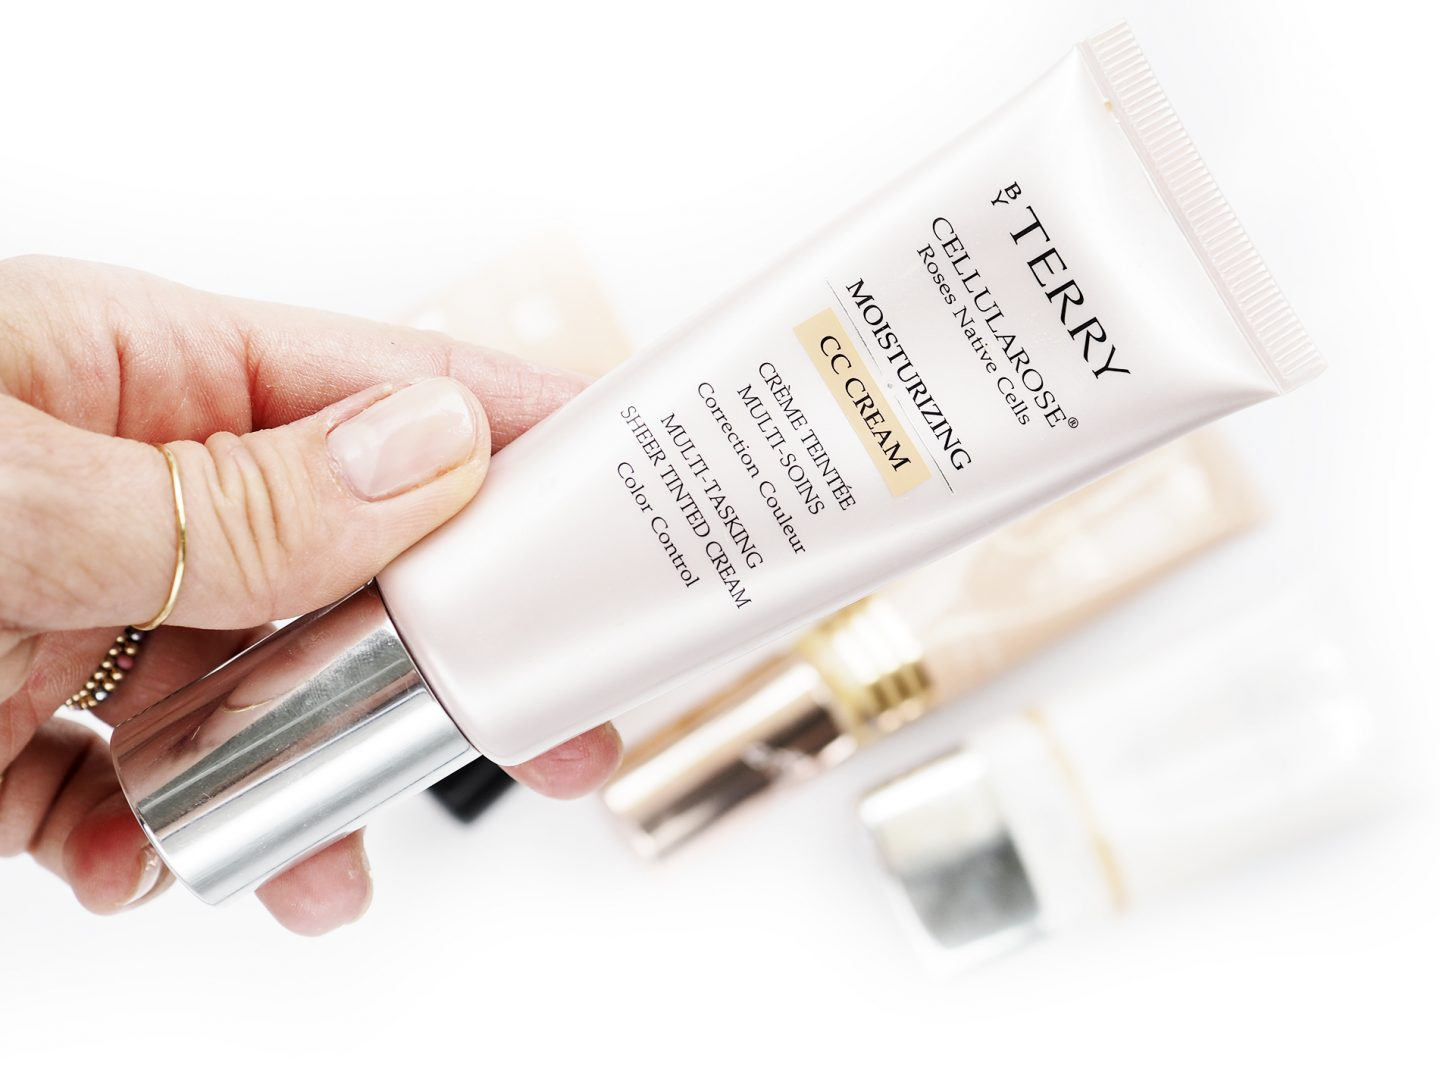 By Terry Cellularose Moisturising CC Cream